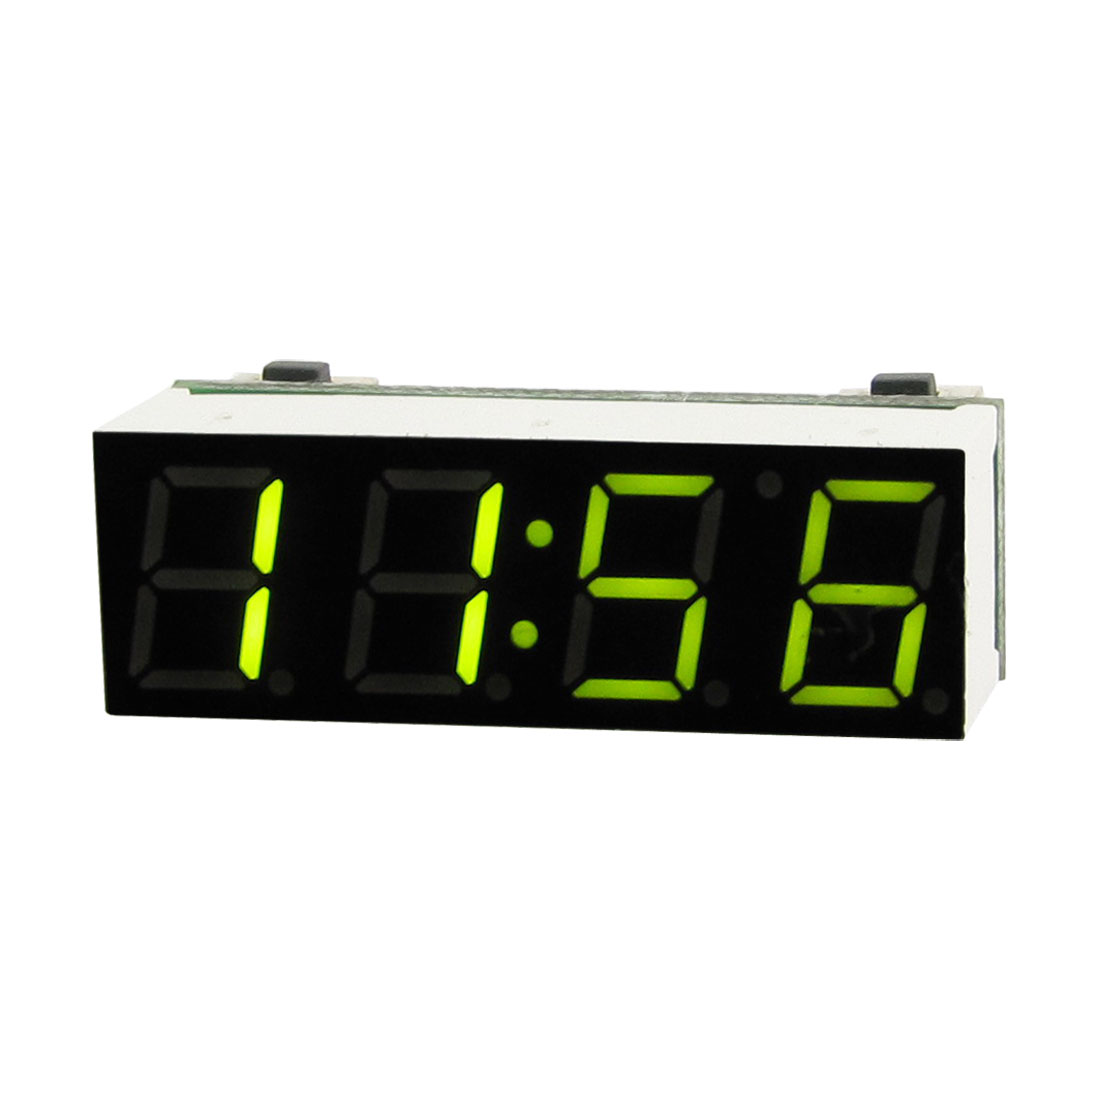 "0.56"" 4-Digital Display Time Temperature Voltage Multifunction Module"